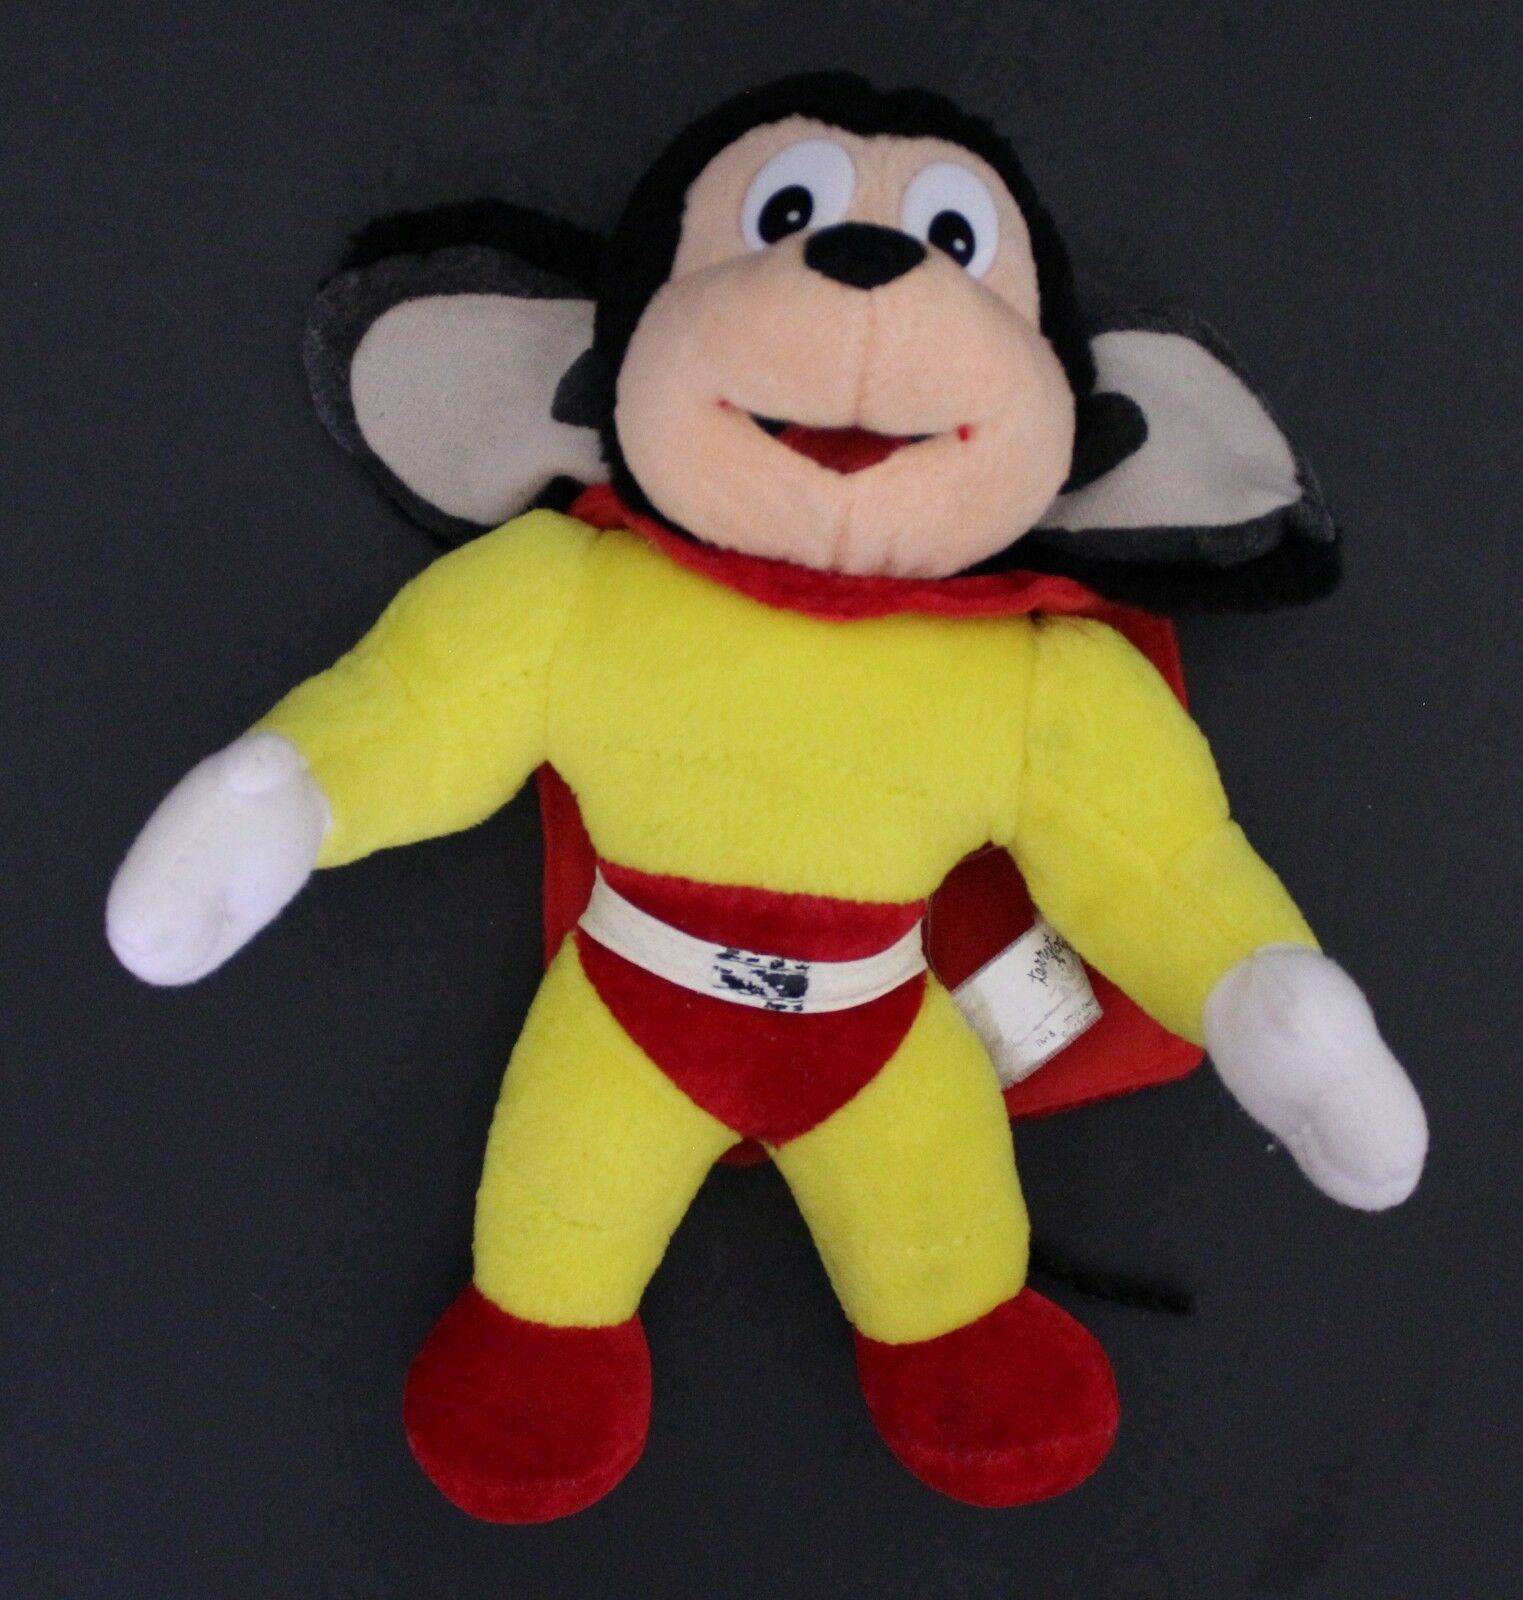 2005 Play-By-Play Terrytoons MIGHTY MOUSE semi-hard plush 25 cm. tall VGood cond